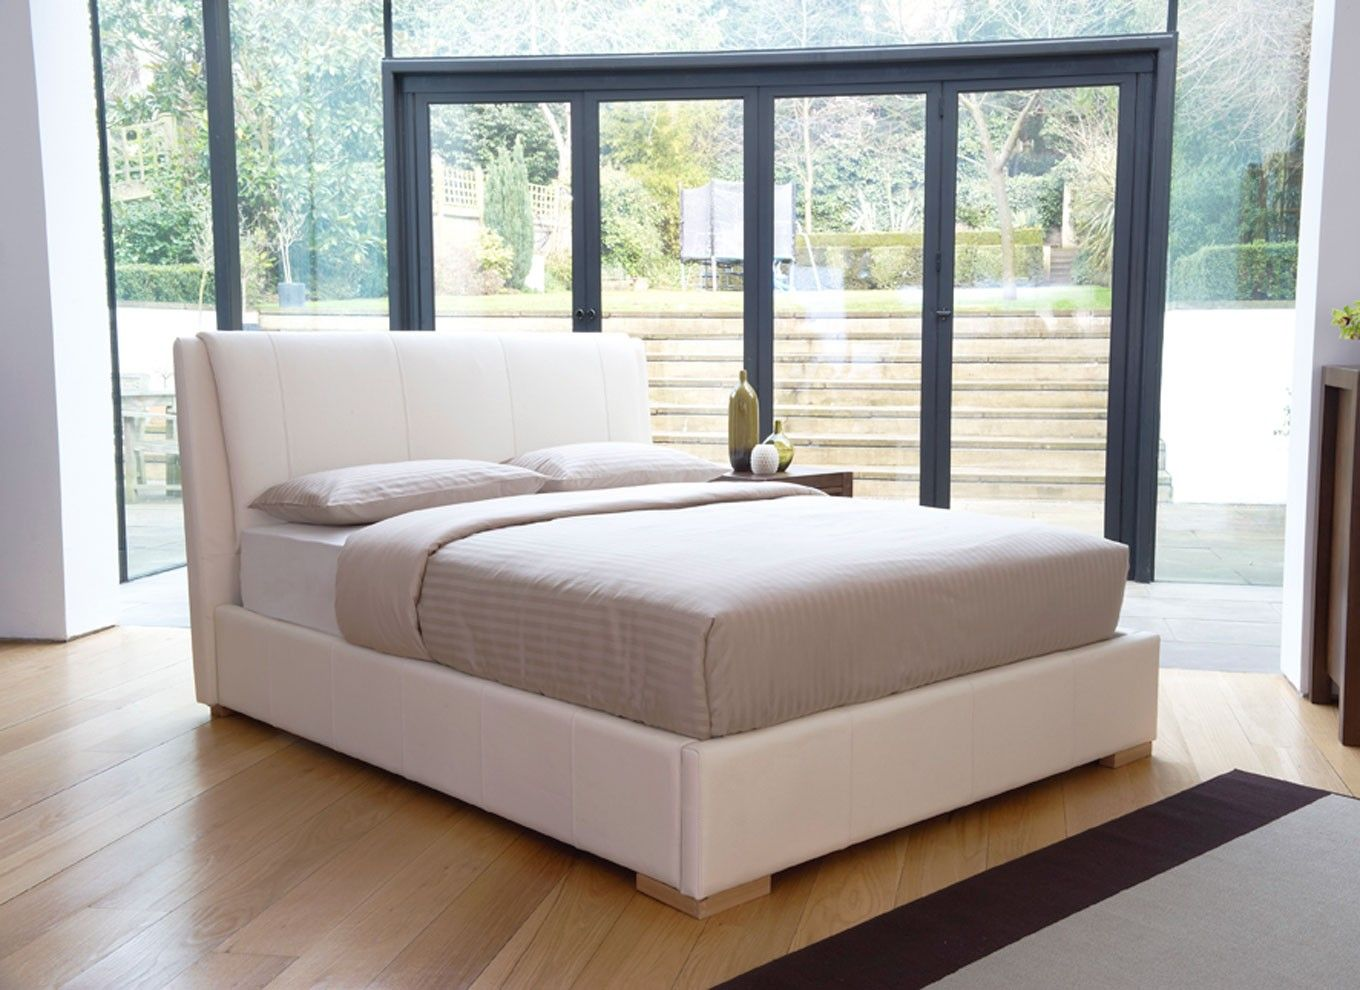 Groovy Rimini Ottoman Bedstead Ivory Home Ottoman Bed Pdpeps Interior Chair Design Pdpepsorg